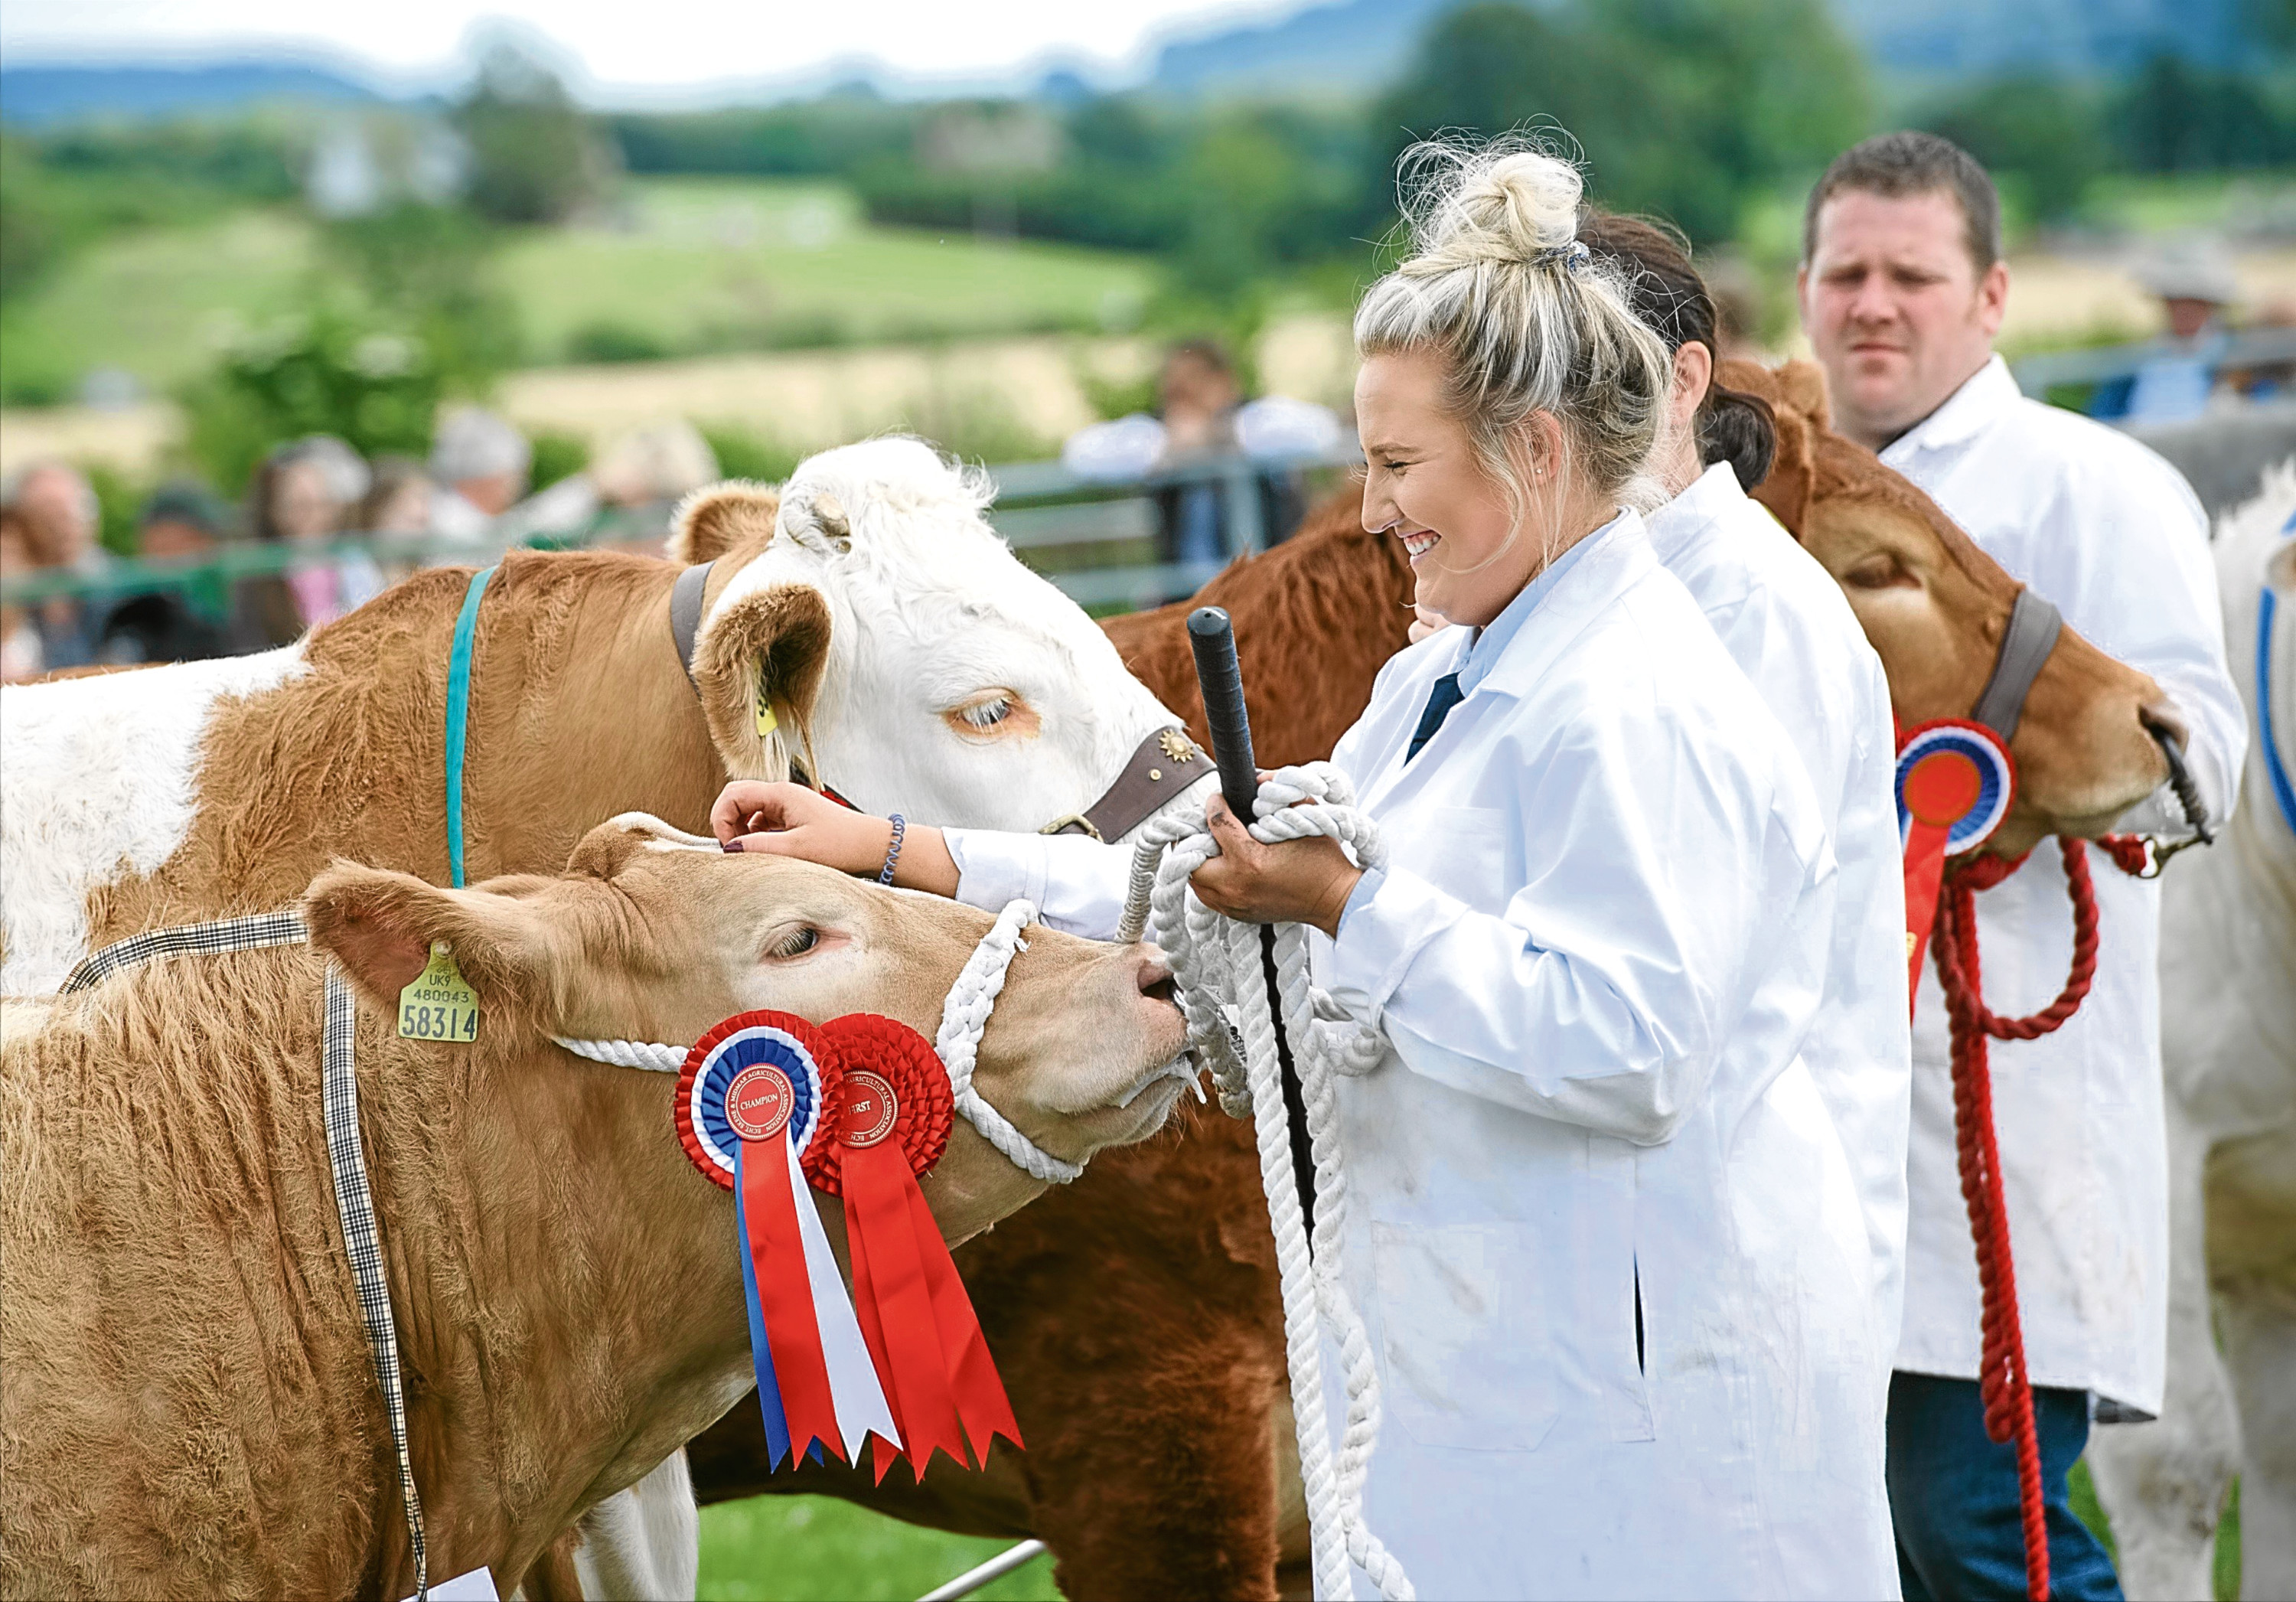 Champions lined up at last year's cattle interbreed contest at the Echt Show.